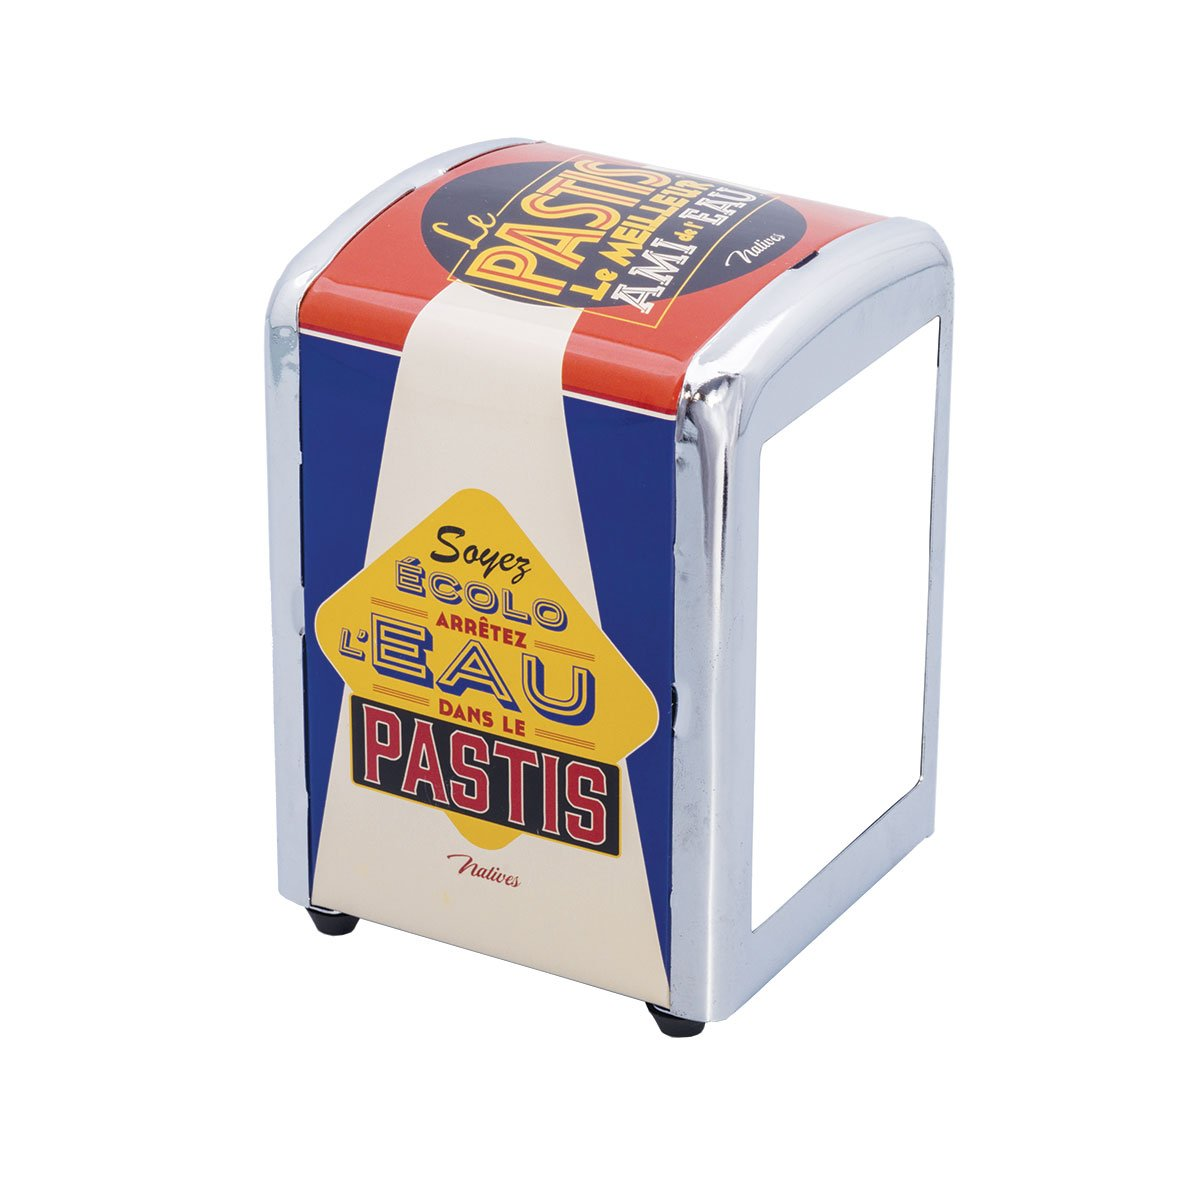 Natives 610360 - Dispensador de servilletas Metal 9,9 x 5 x 7 cm: Amazon.es: Hogar